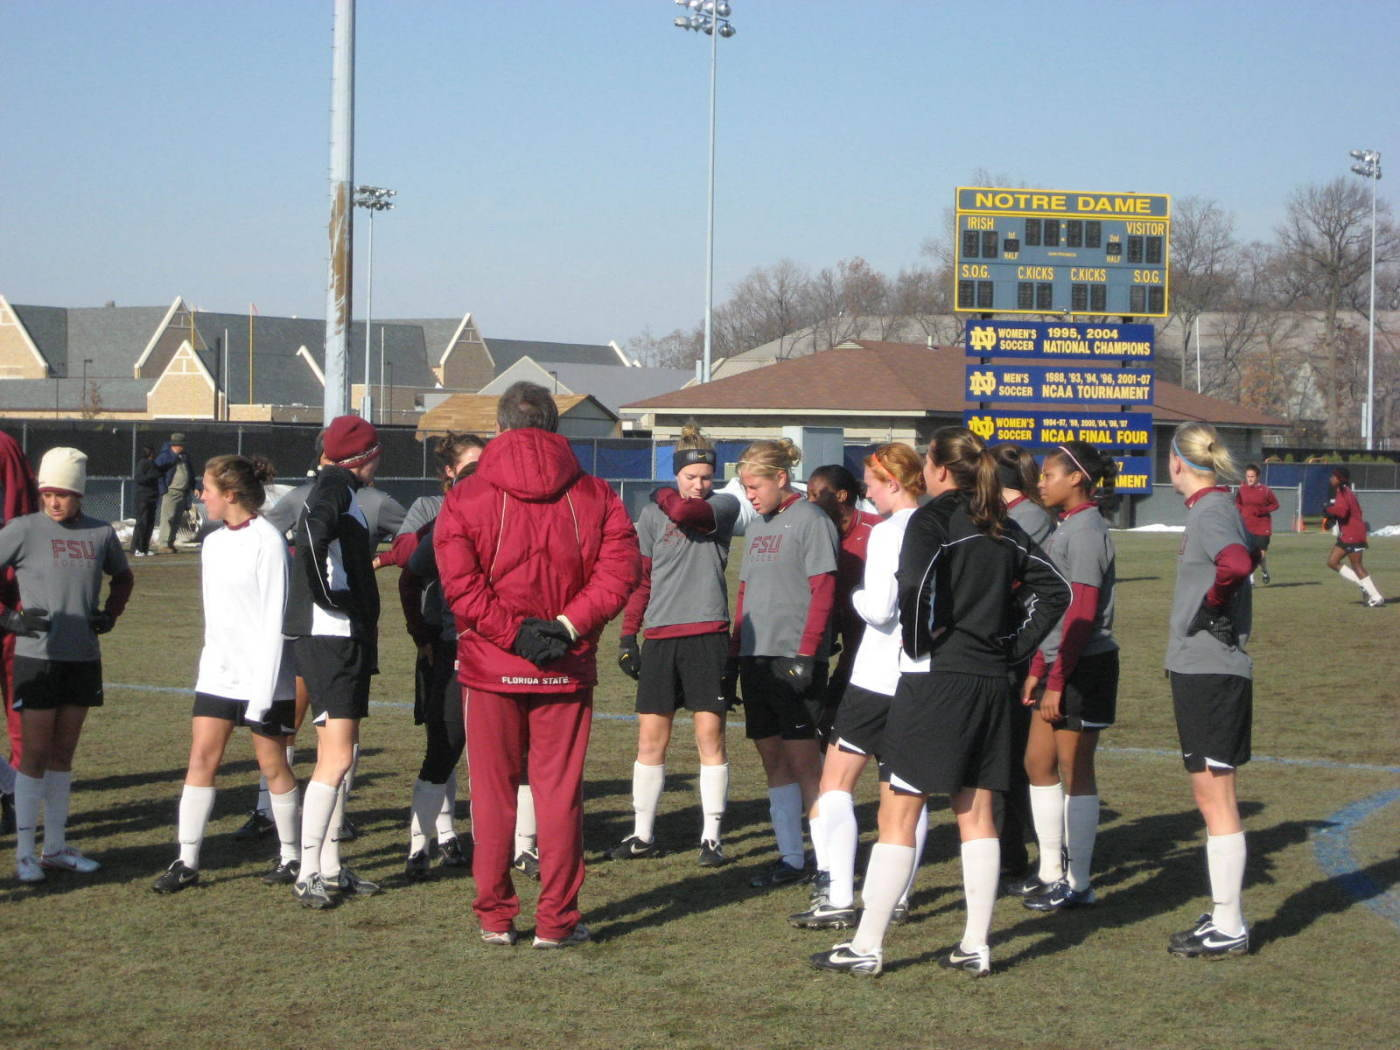 Training day on Thursday in South Bend. Head coach Mark Krikorian addresses the team before the start of practice.